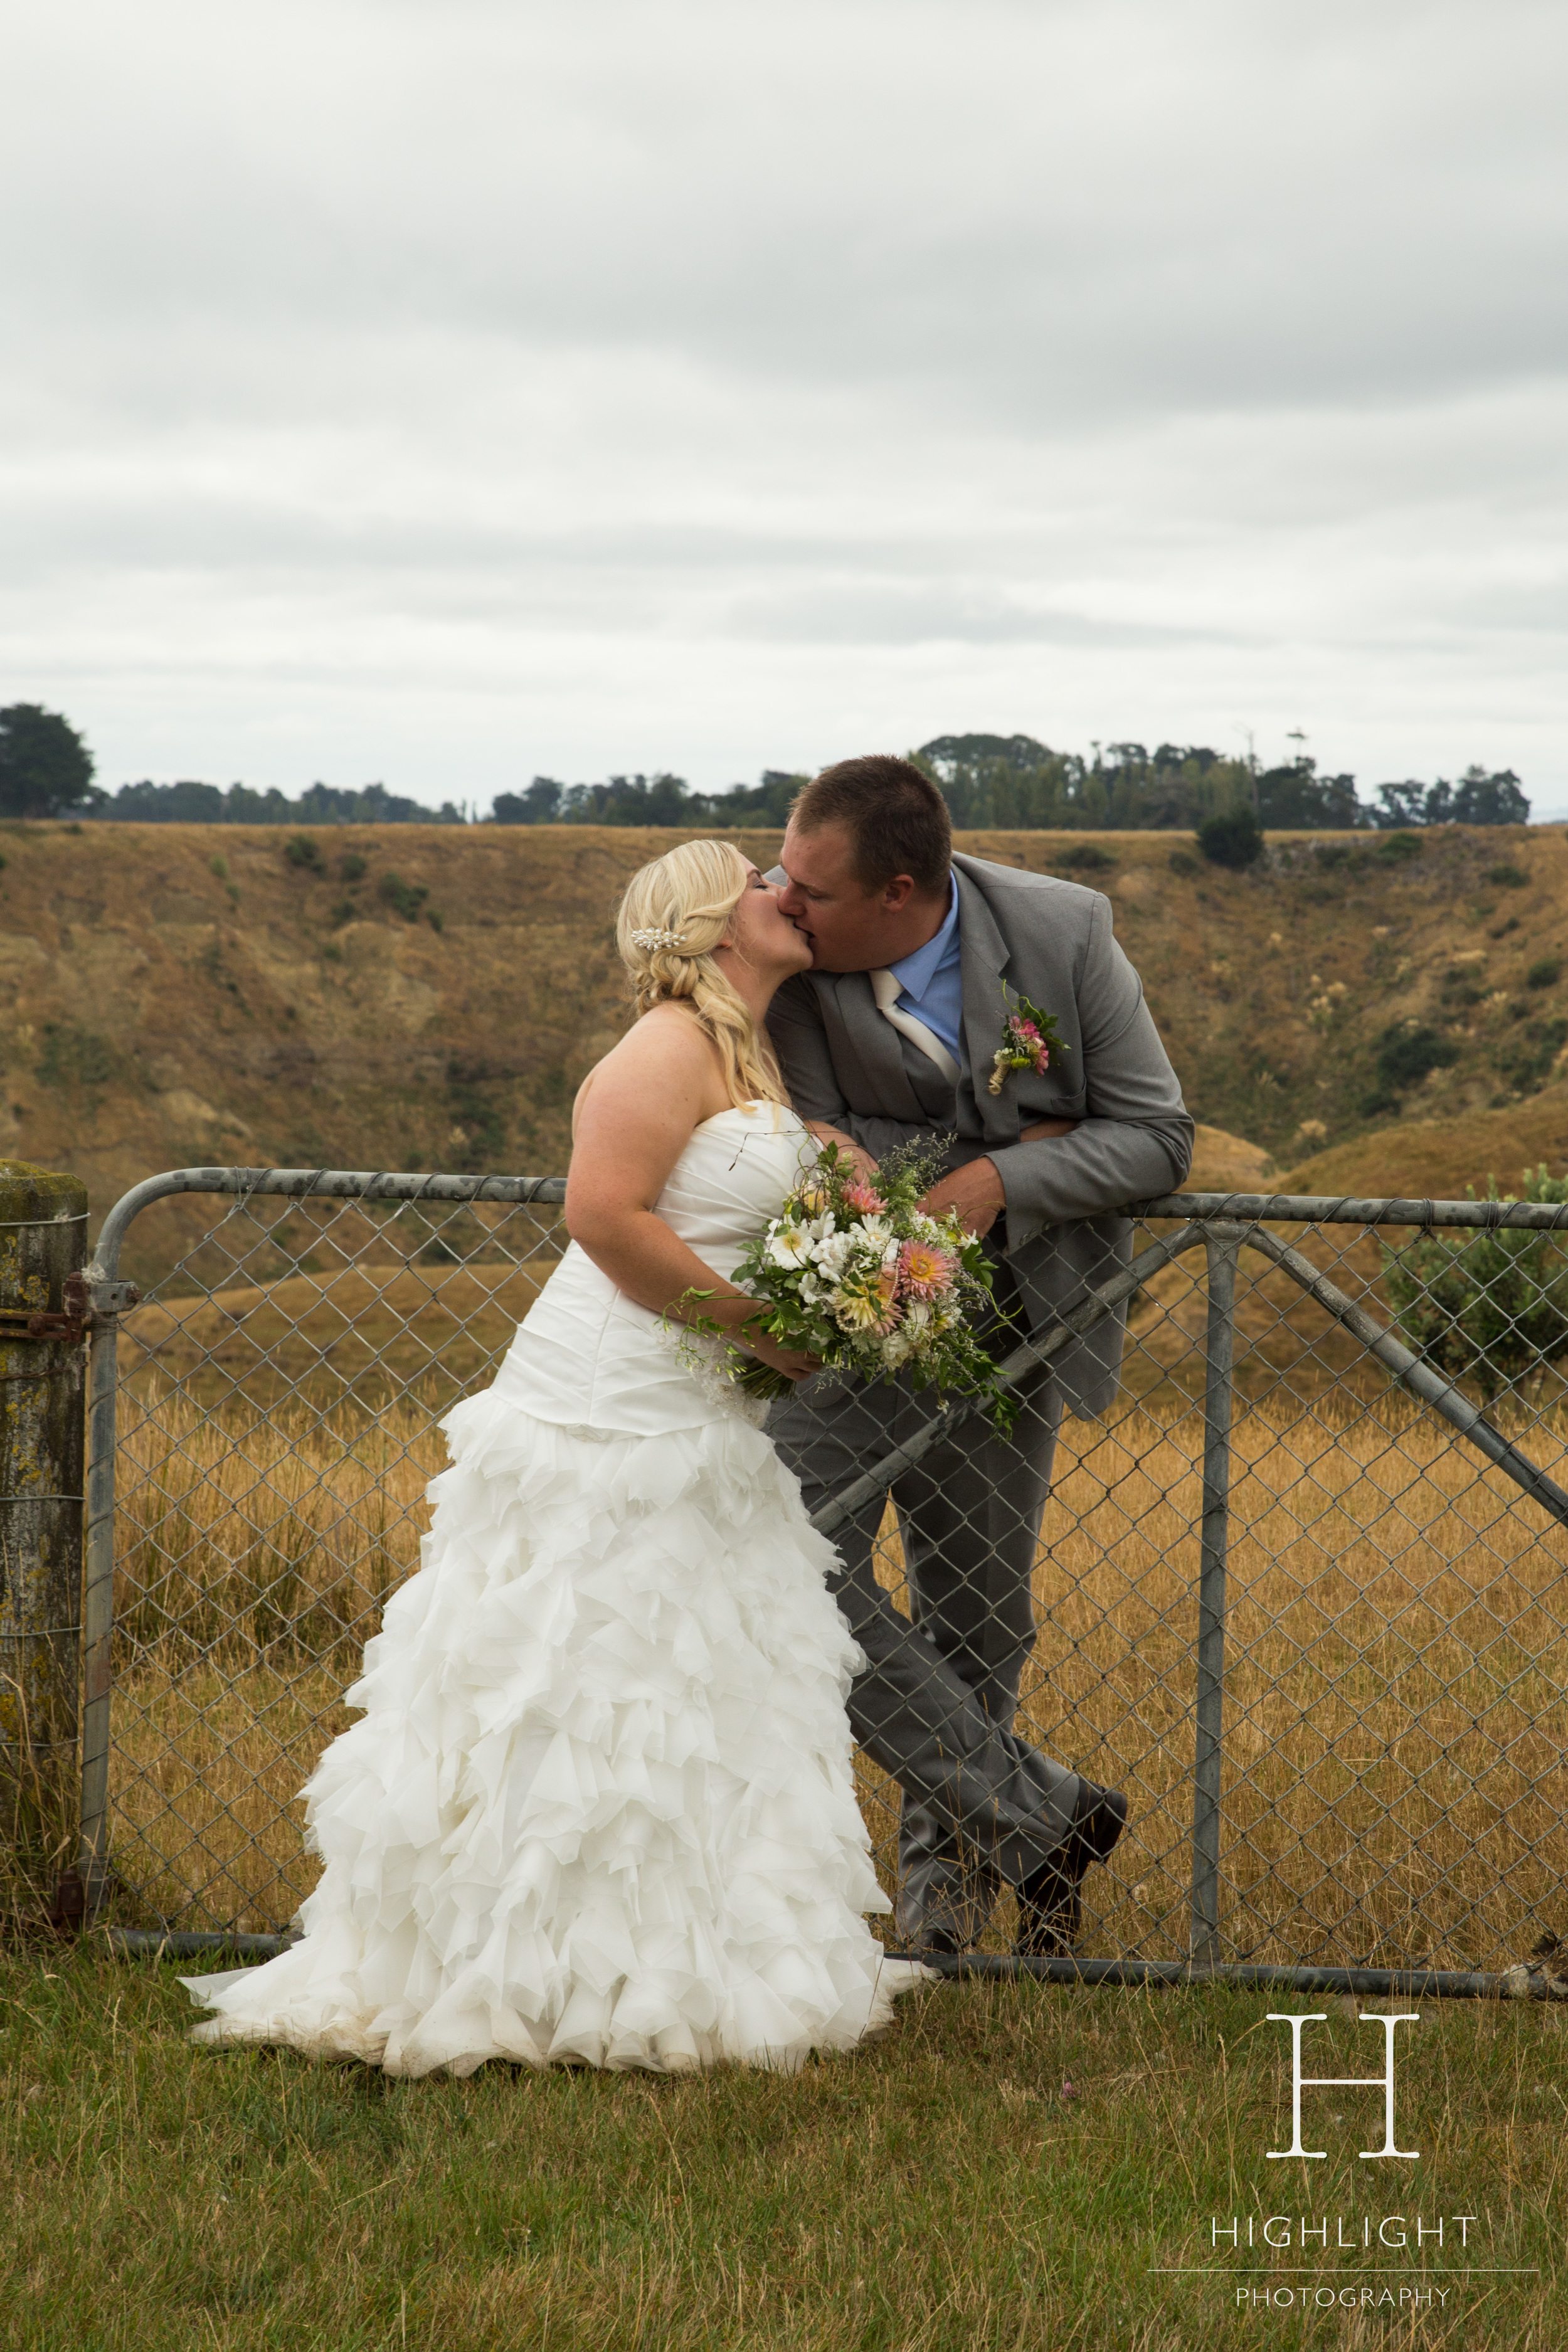 highlight_photography_wedding_new_zealand_kristibridesmaids2.jpg